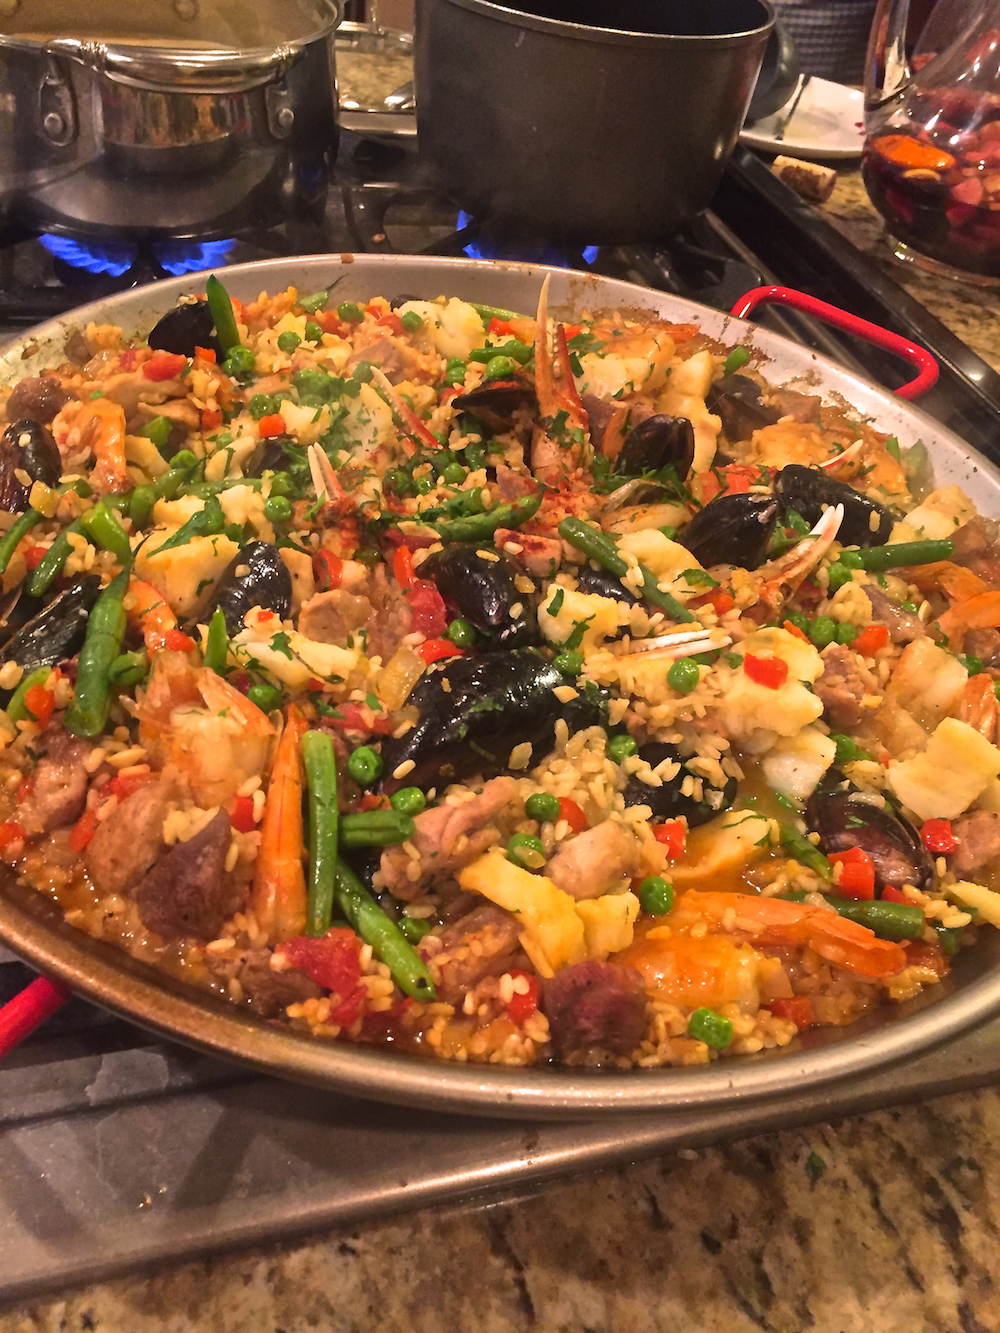 Spanish Paella, seafood and vegetables